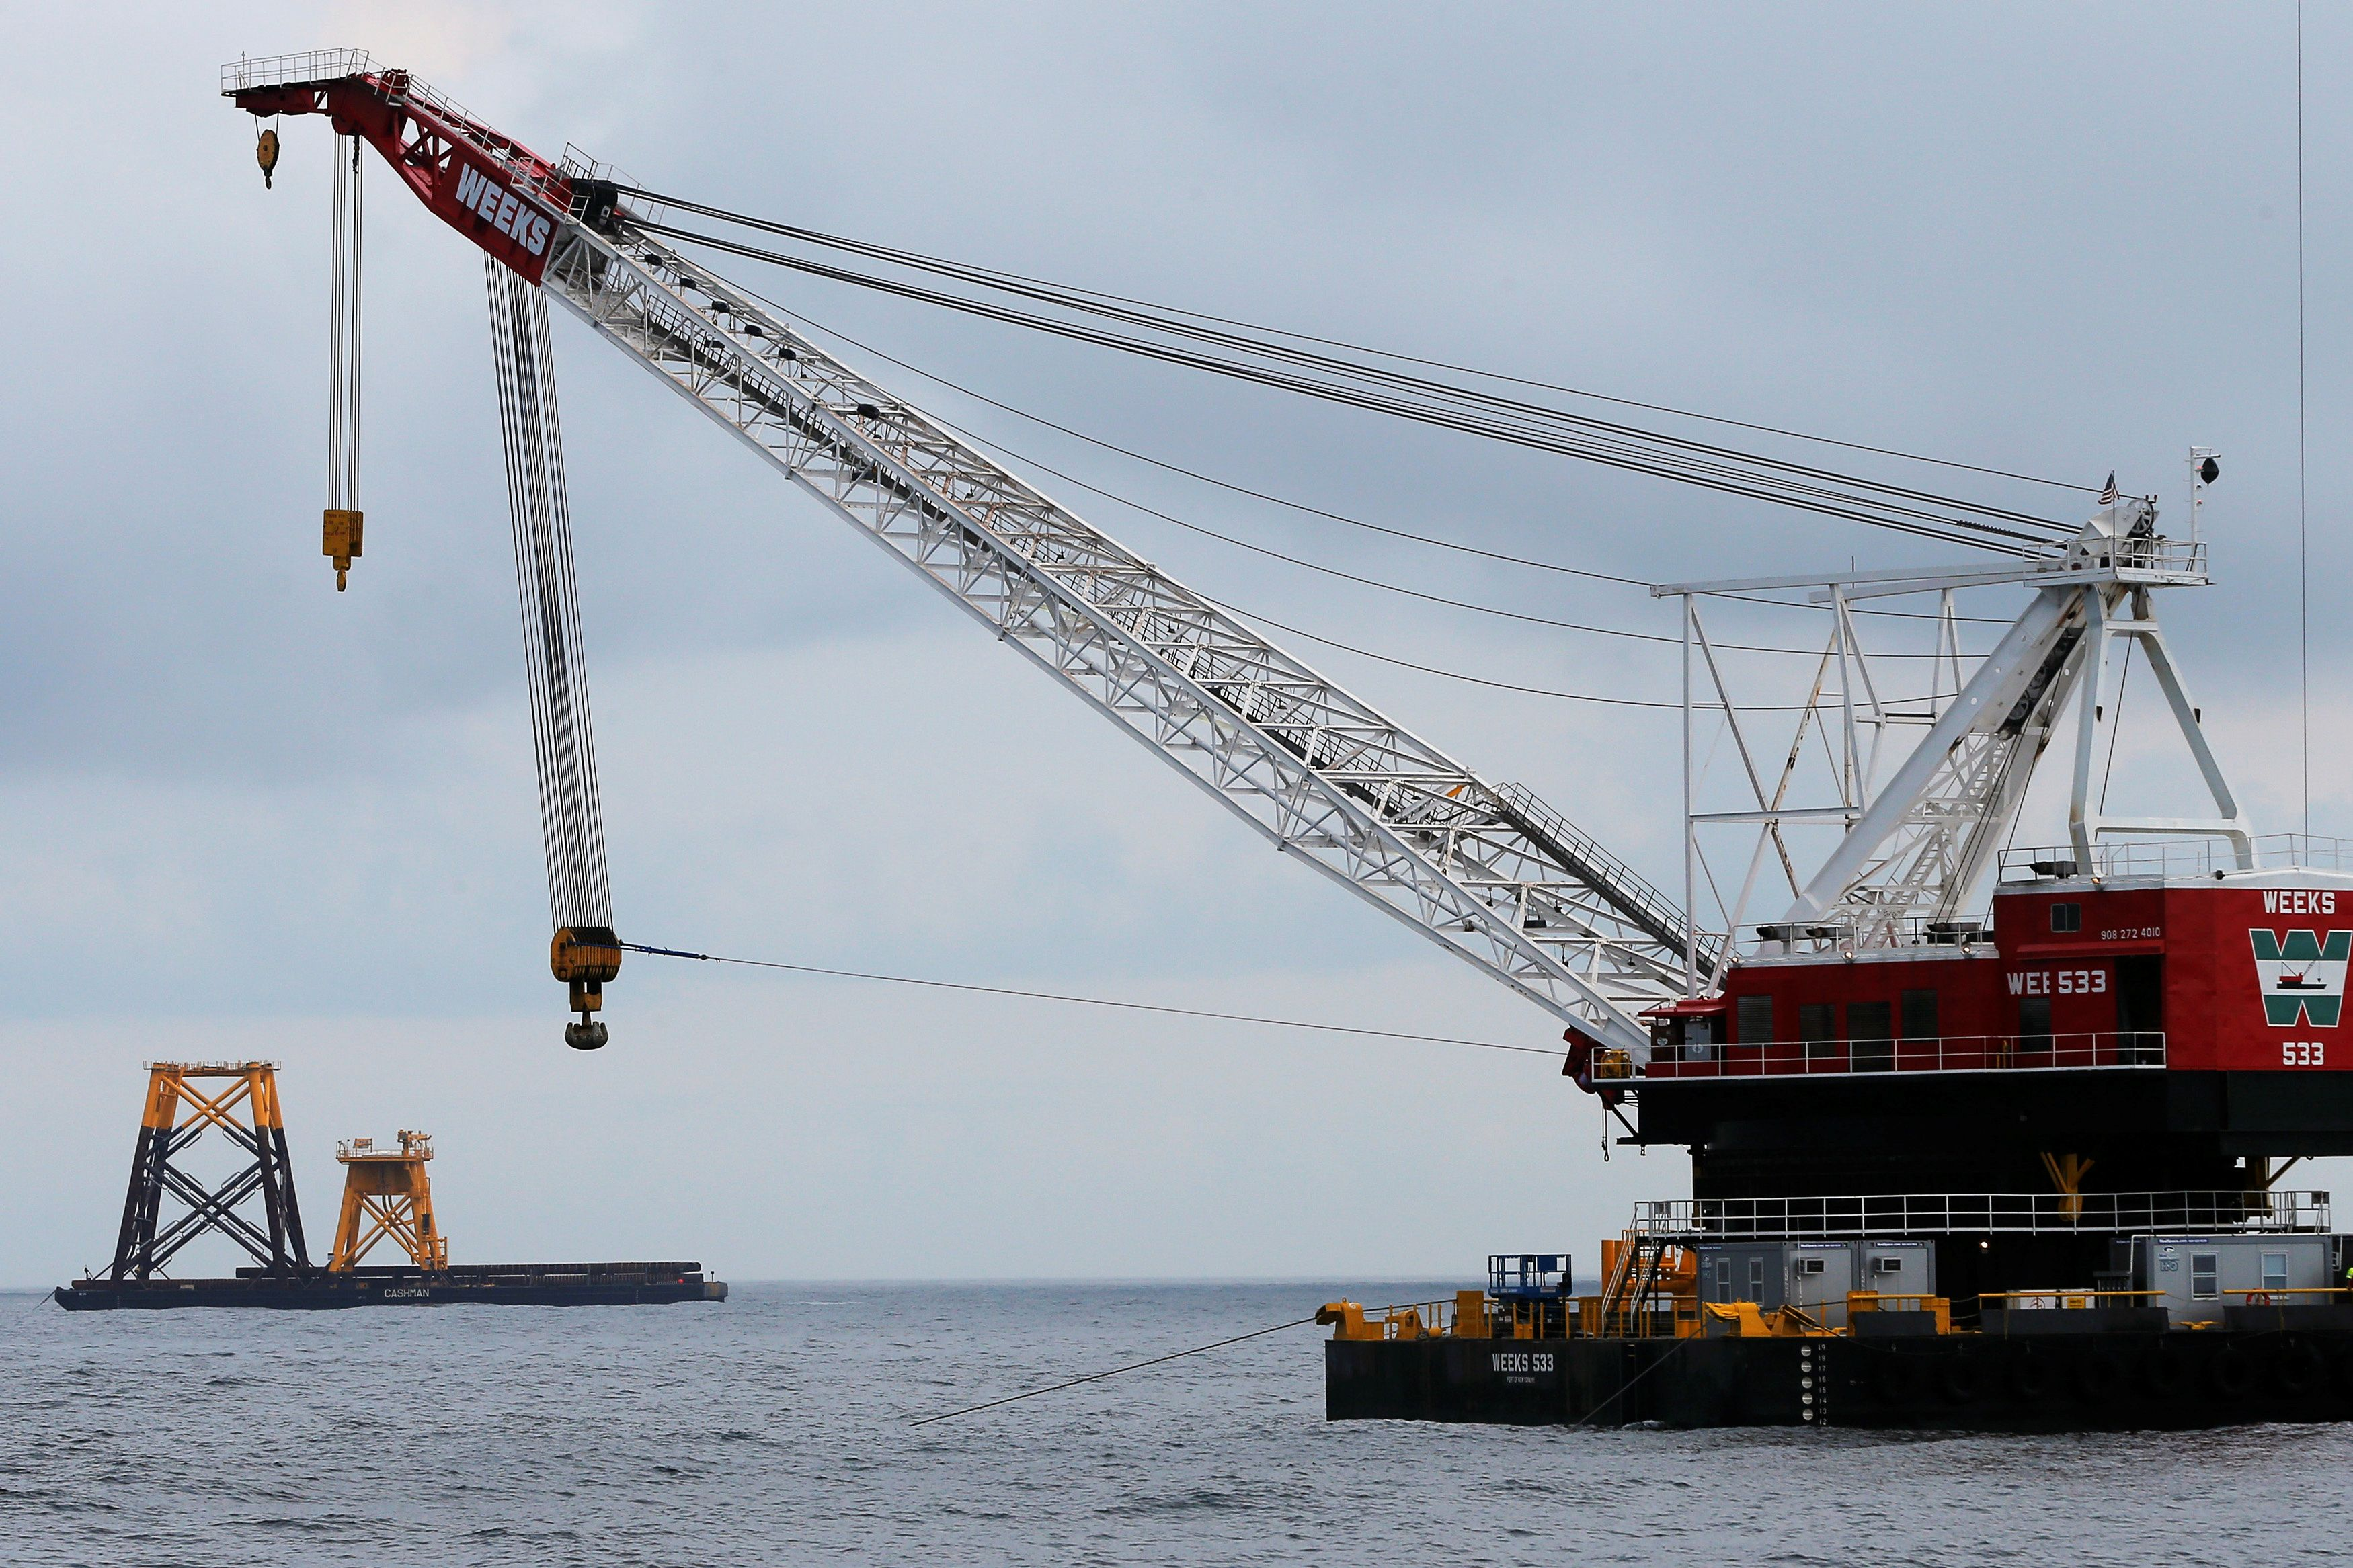 A construction crane floats next to a barge carrying jacket support structures and a platform for a turbine for a wind farm in the waters of the Atlantic Ocean off Block Island, Rhode Island July 27, 2015. REUTERS/Brian Snyder/File Photo